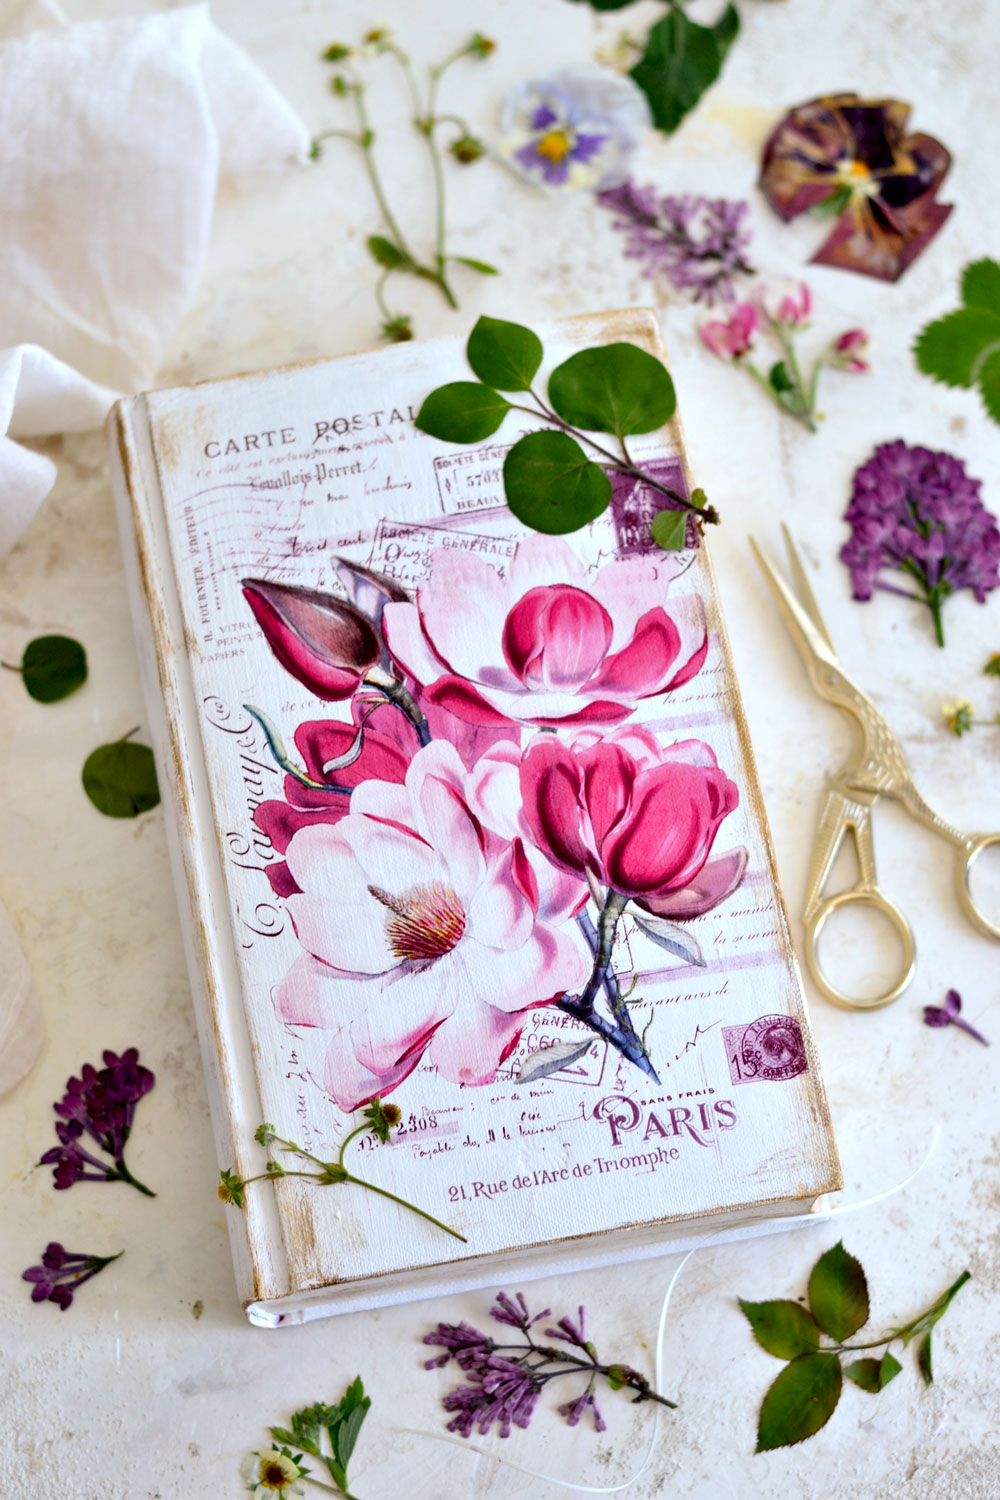 Upcycle a Book into a Pretty French Flower Press!